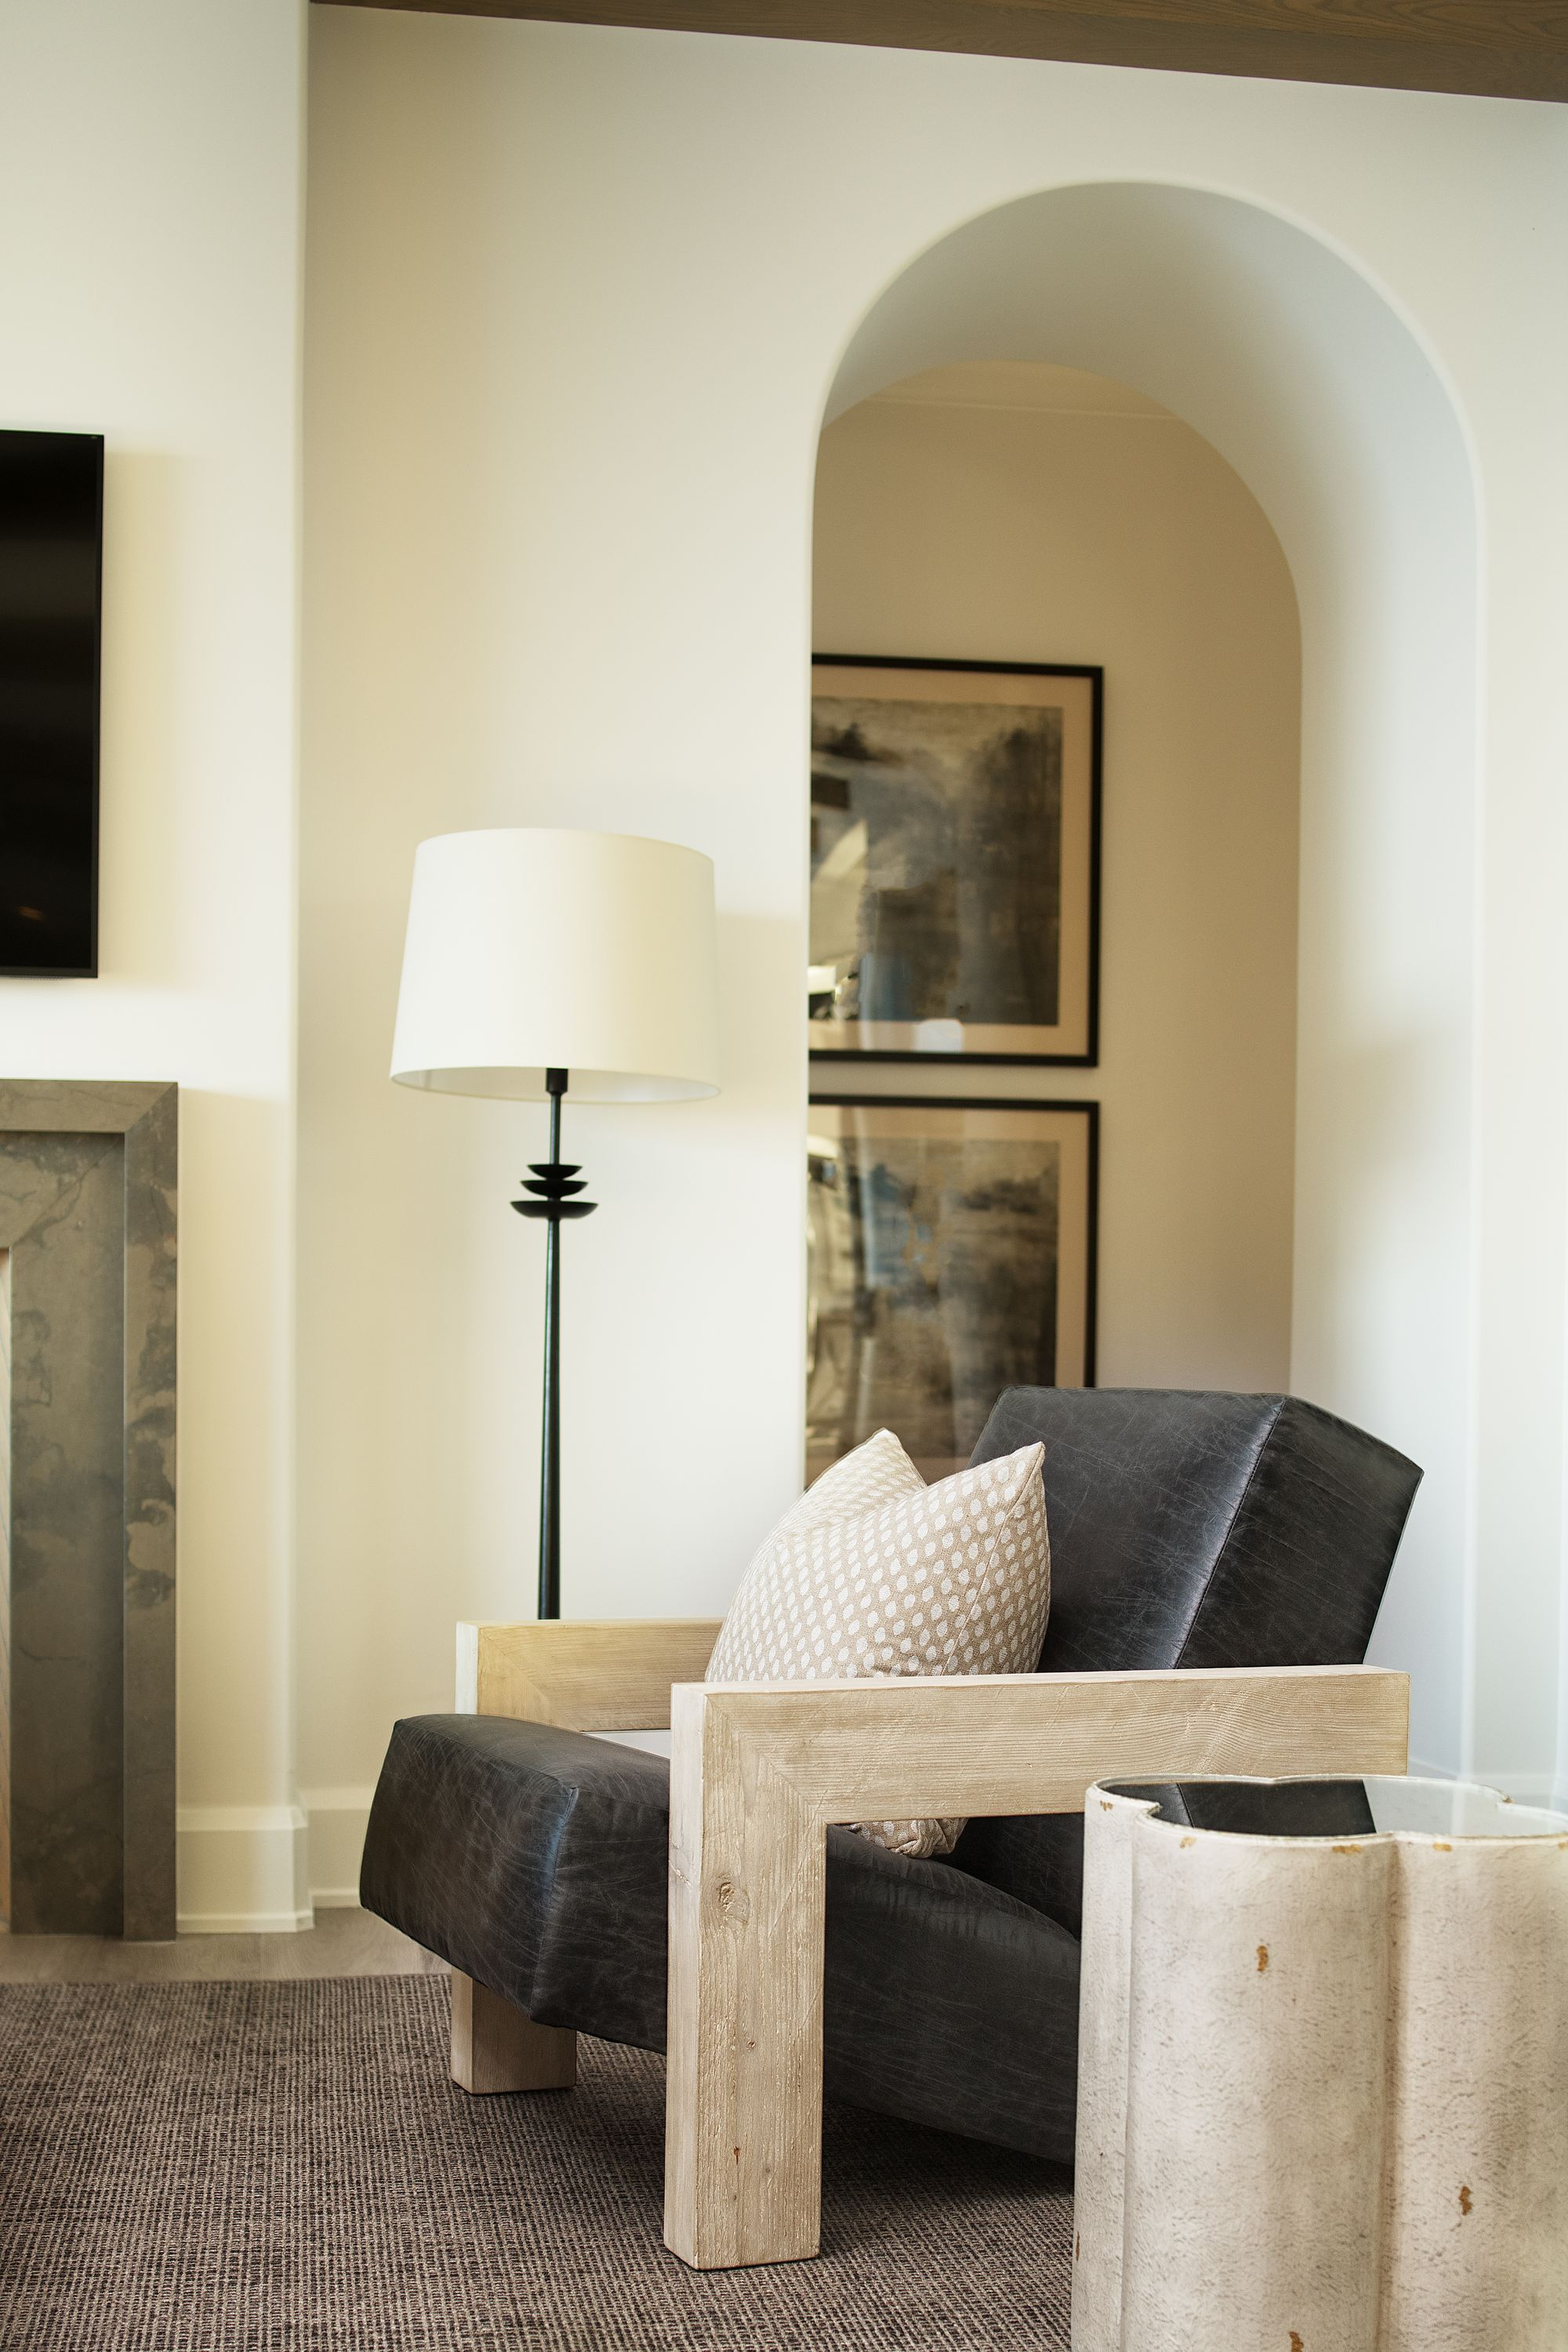 Lot 6 Living Room 3.jpg